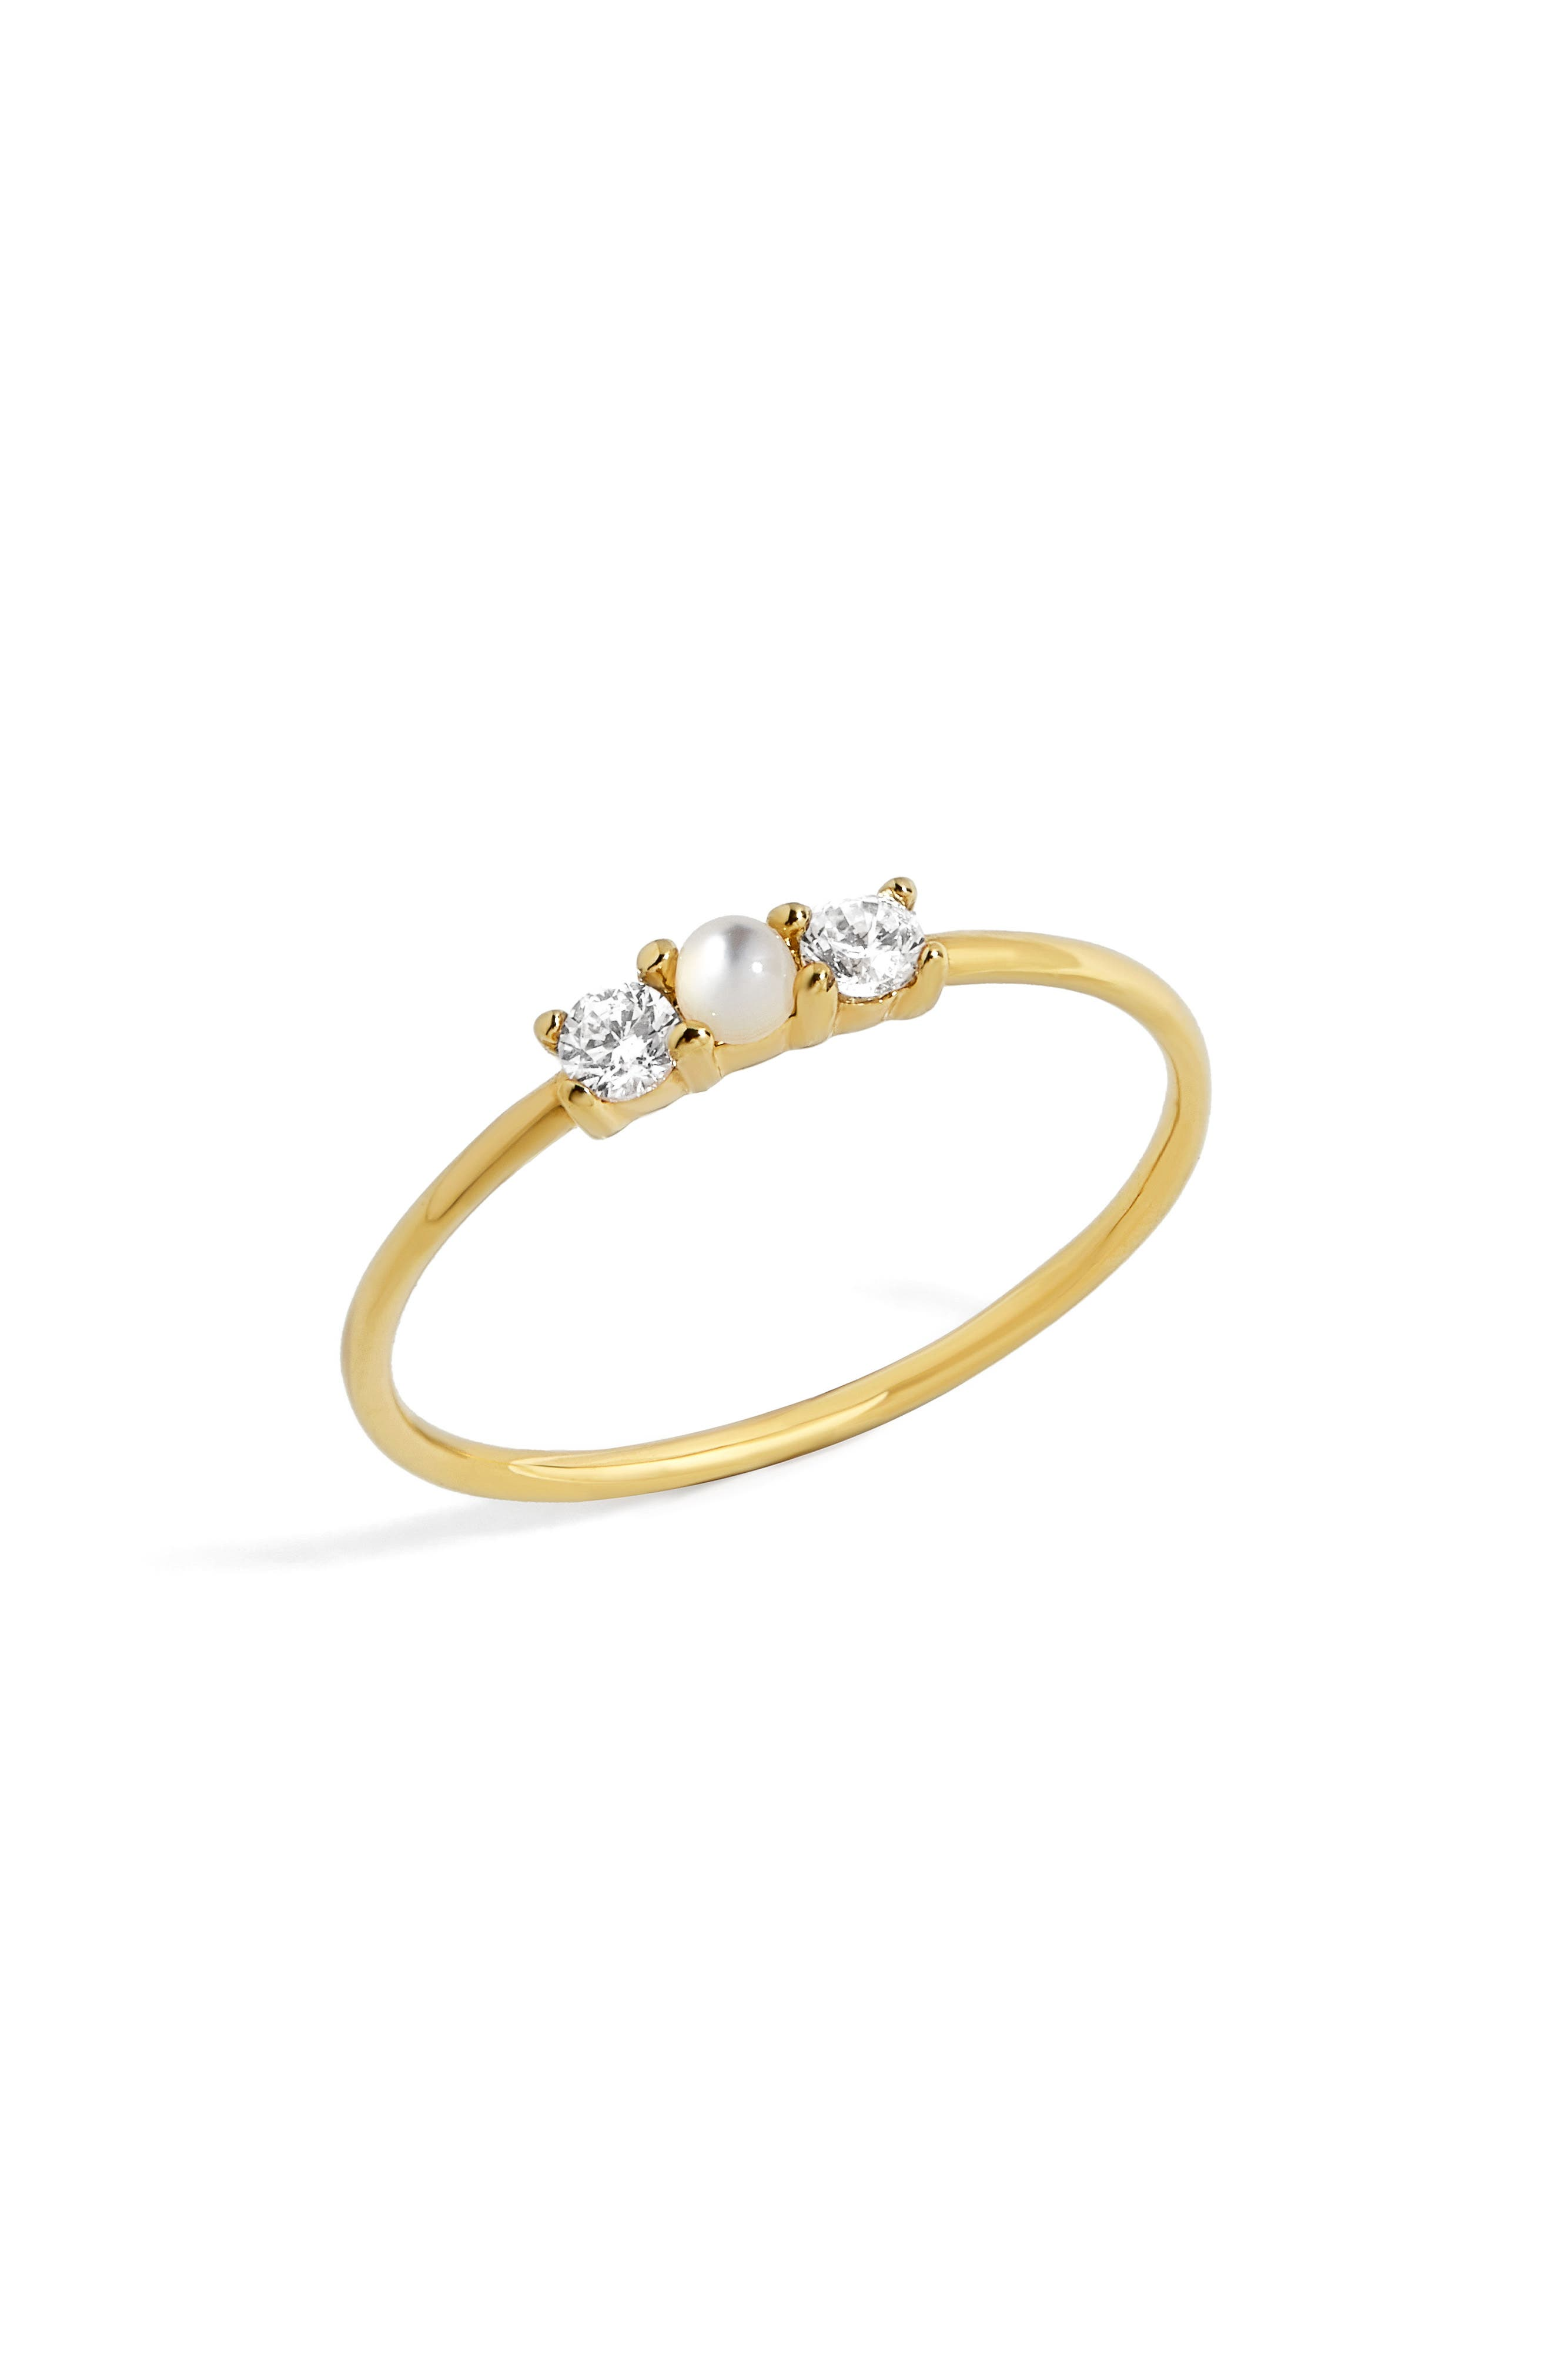 Opalescent Everyday Fine Ring,                             Main thumbnail 1, color,                             Gold